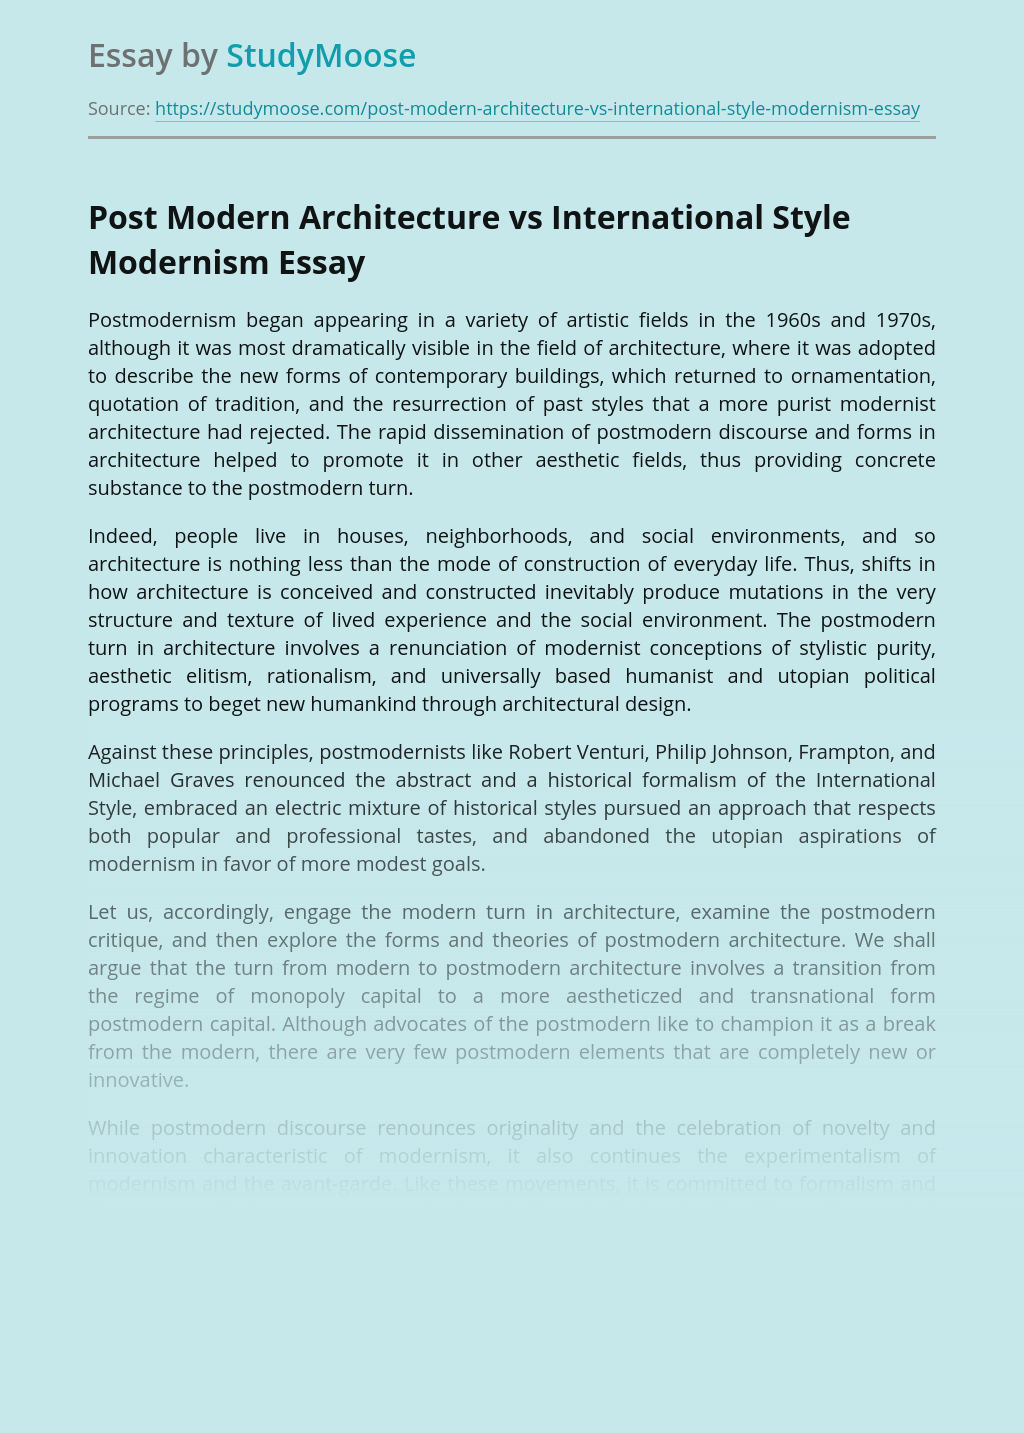 Post Modern Architecture vs International Style Modernism